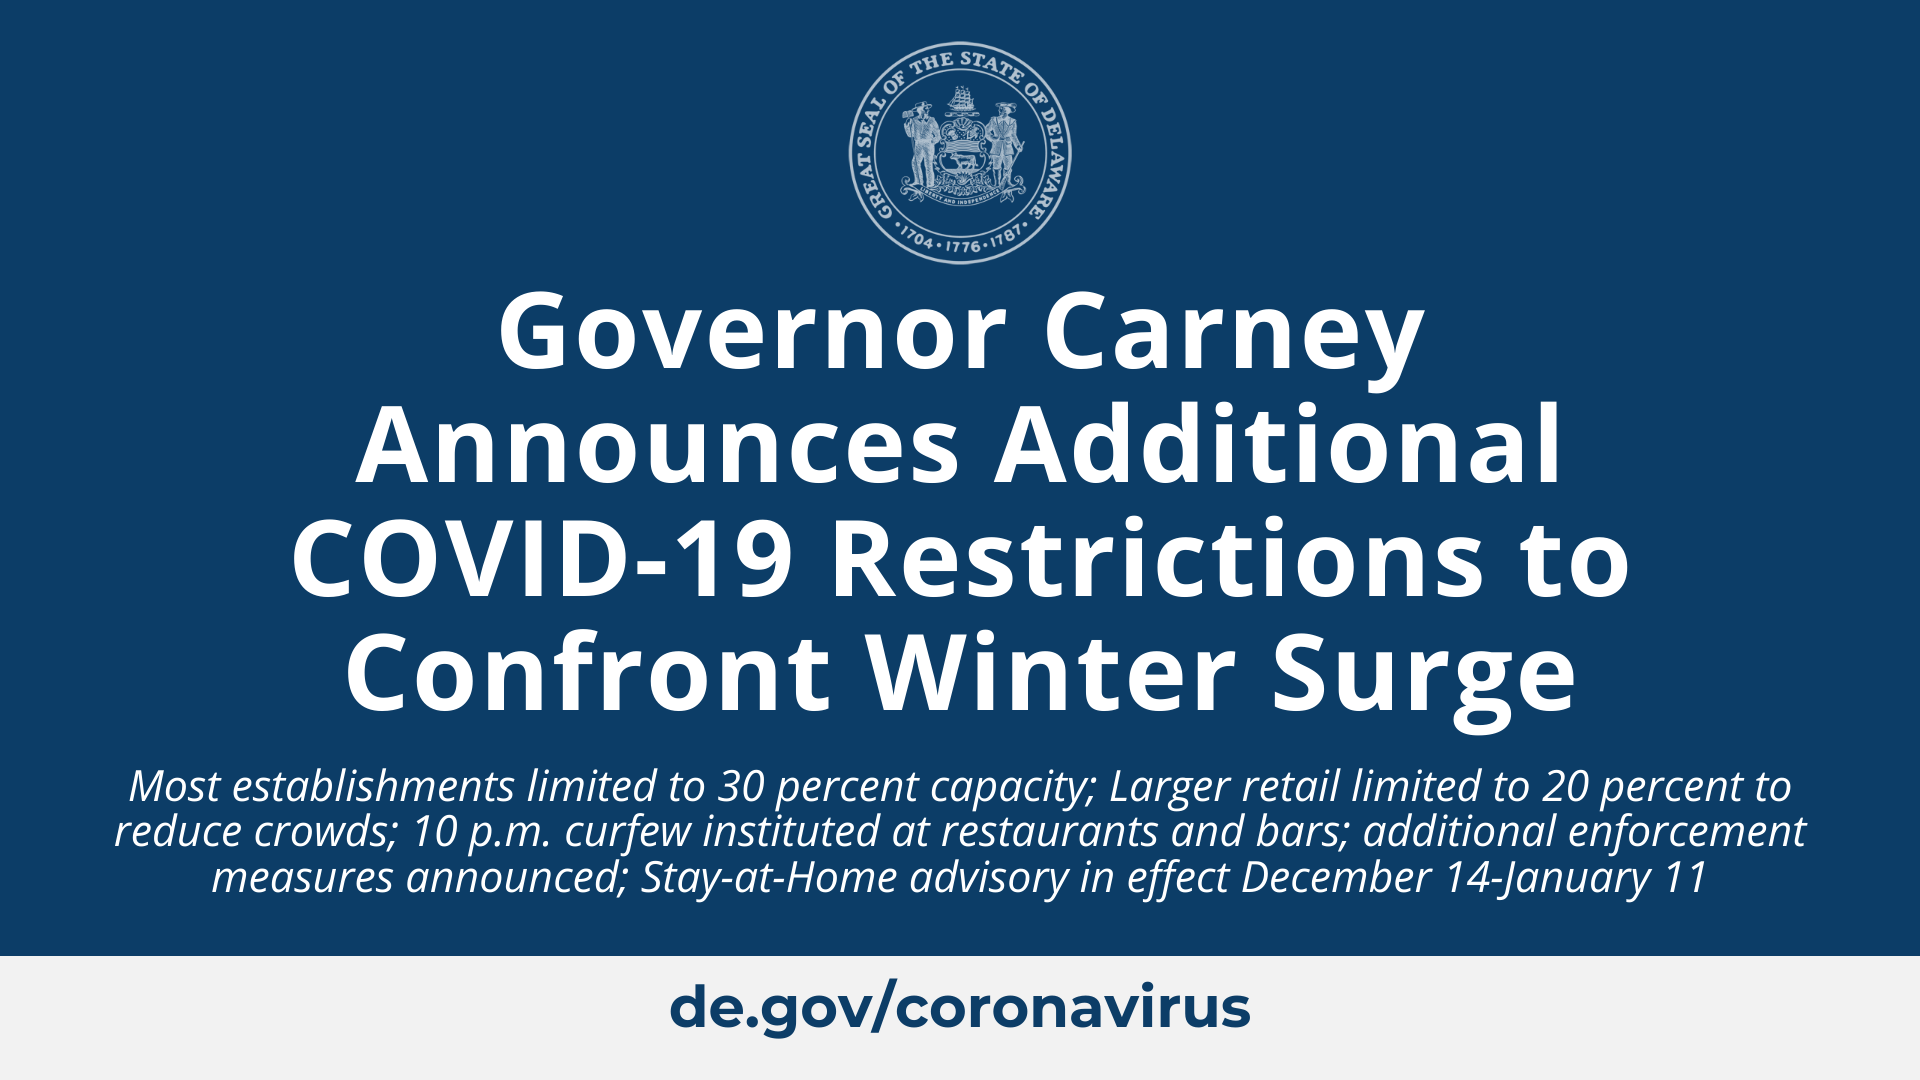 Governor Carney Announces Additional COVID-19 Restrictions to Confront Winter Surge - State of Delaware News